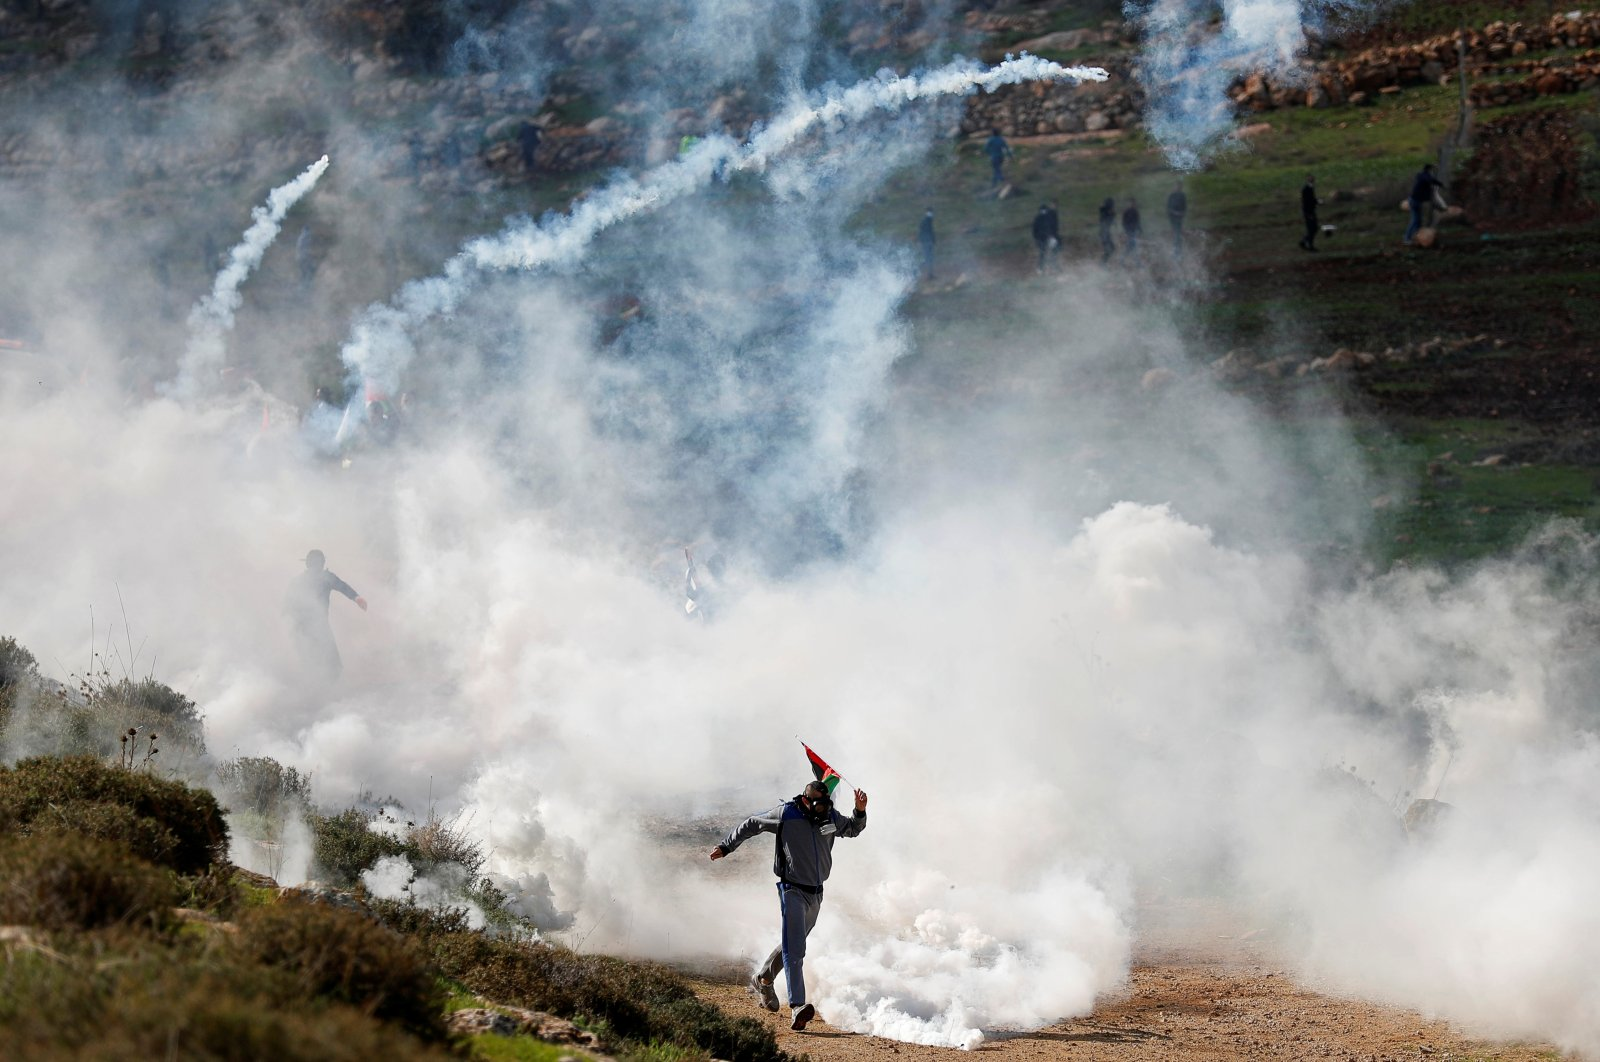 A Palestinian demonstrator runs away from tear gas canisters fired by Israeli forces during a protest against Jewish settlements, in Beit Dajan in the Israeli-occupied West Bank, Palestine, Dec. 18, 2020. (Reuters Photo)